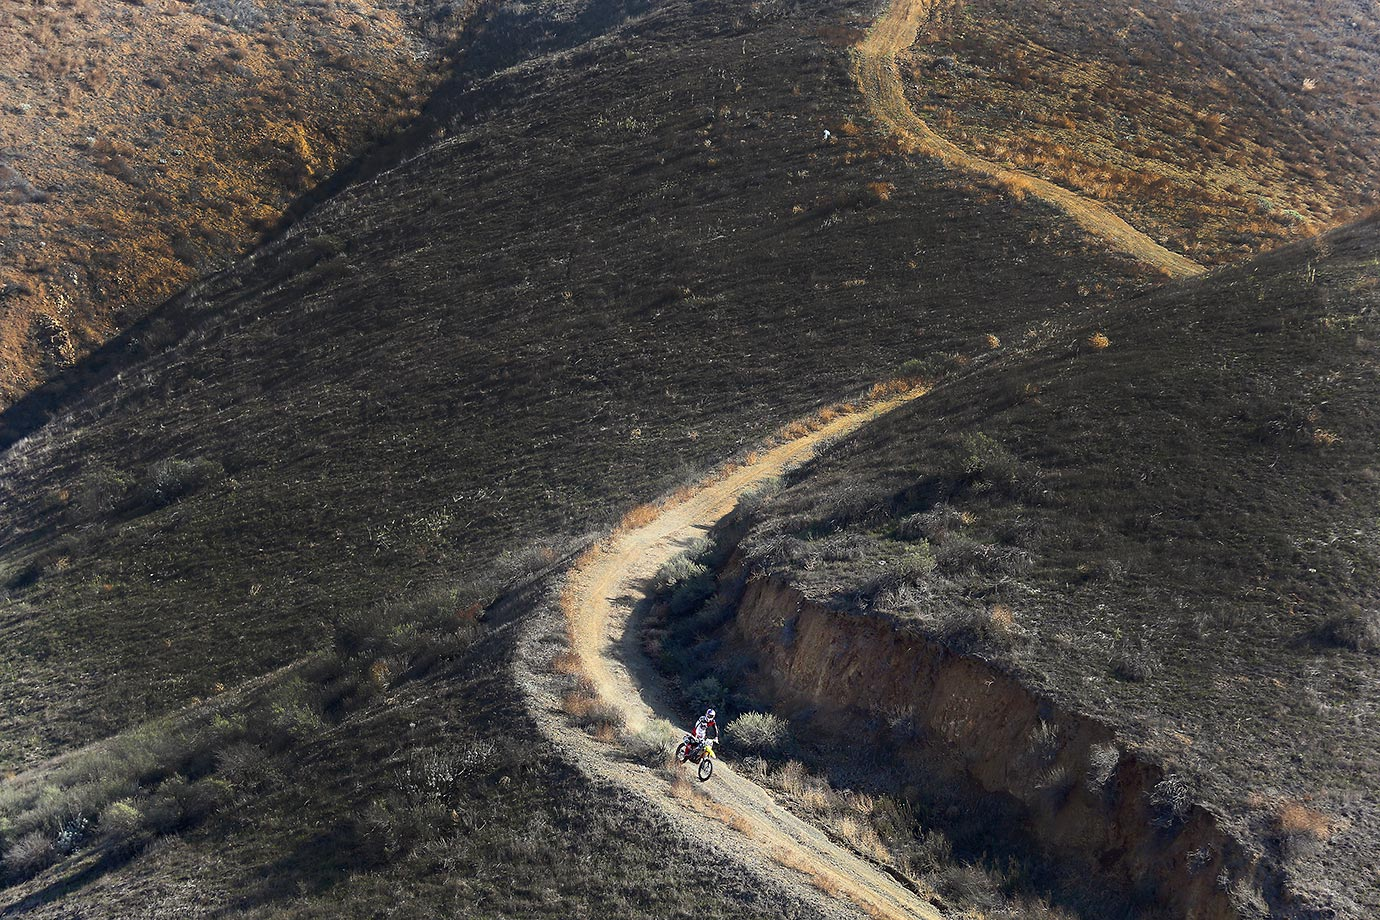 Ken Roczen rides down a mountain trail in the hills of Corona.